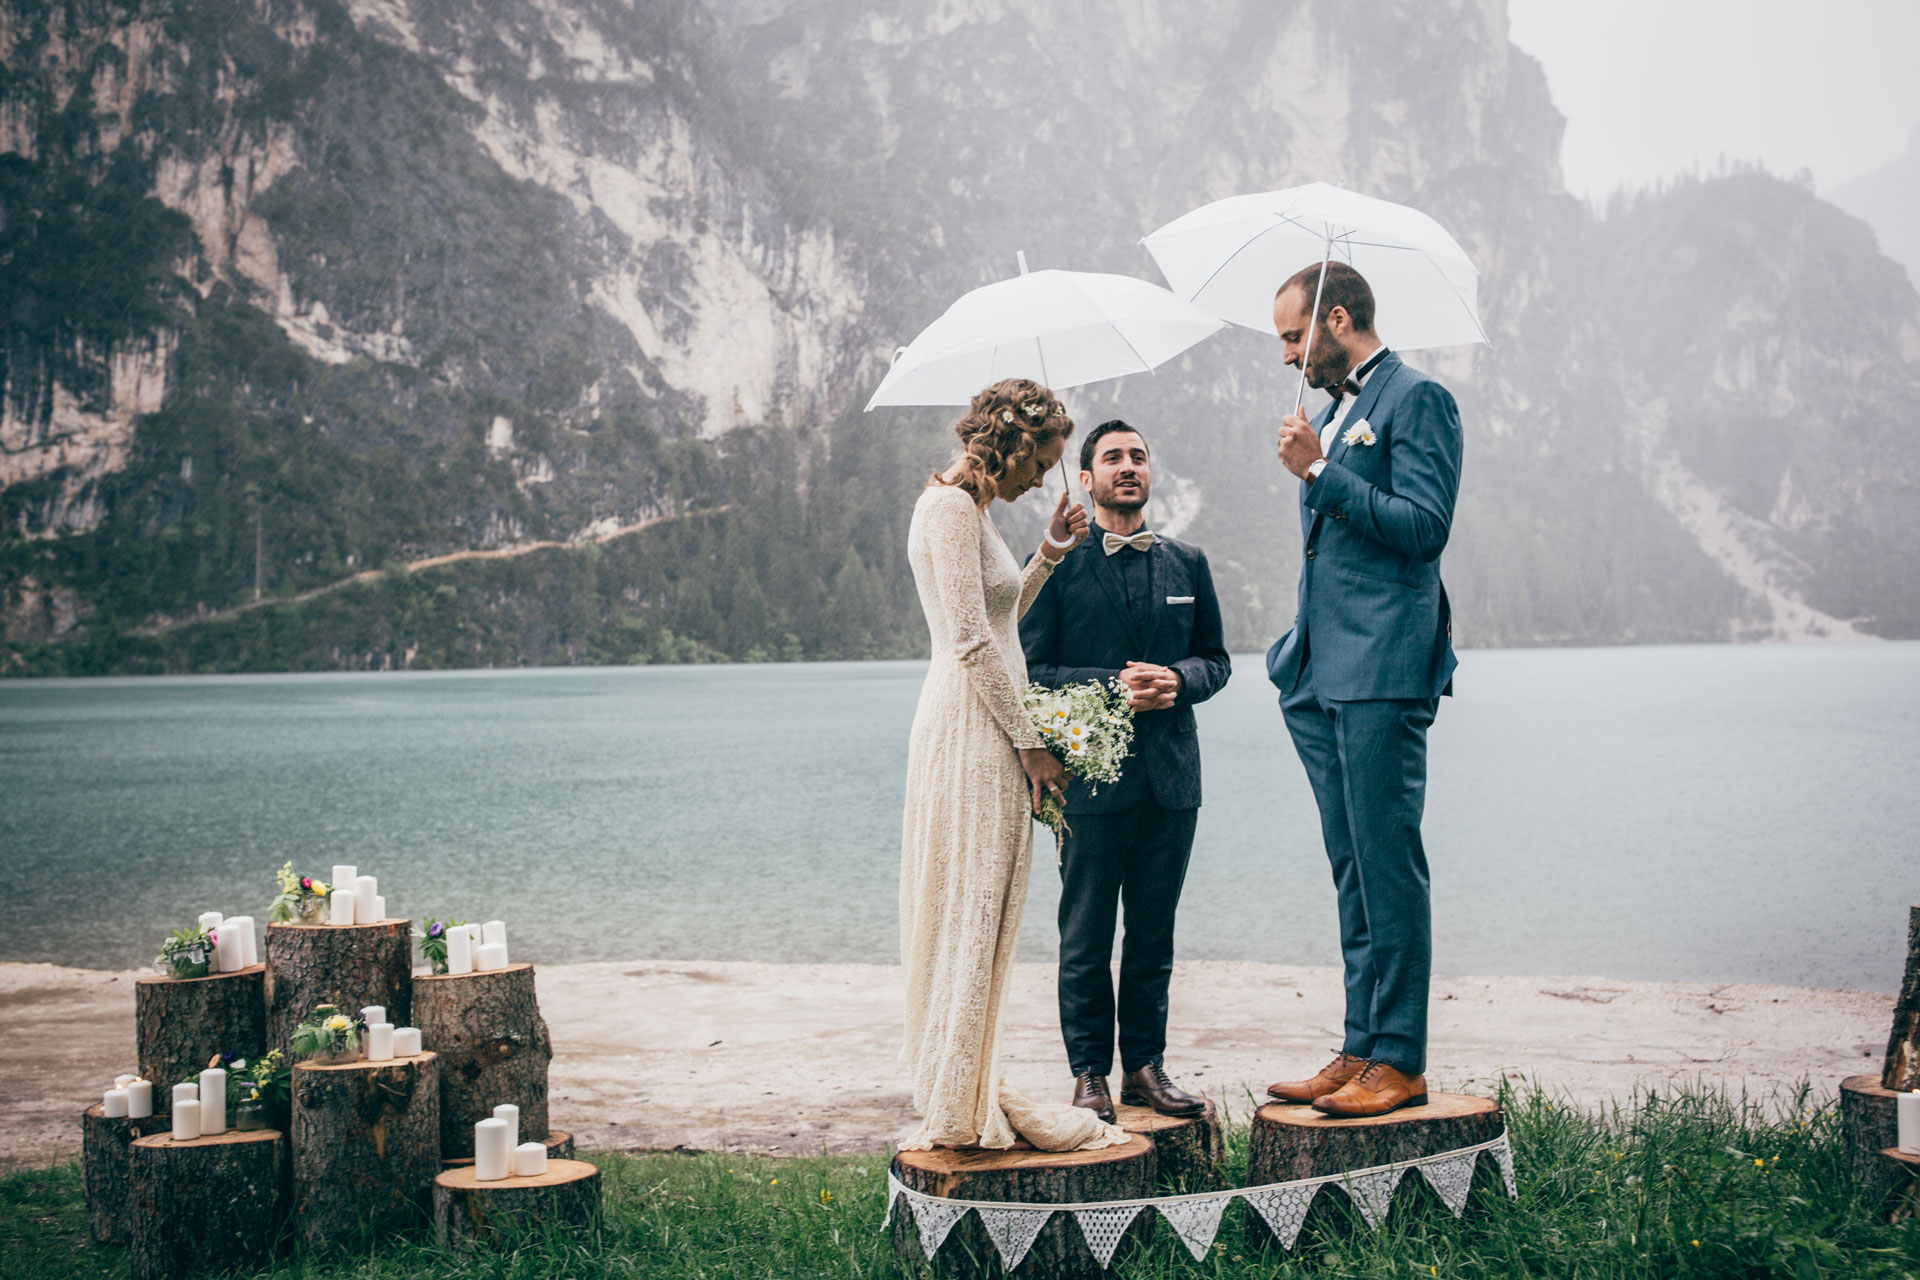 Destination wedding photographer – Elopement on lake Braies Dolomites Professional wedding photographer - Happy Birthday - photographer in Lake Garda - Verona - Valpolicella